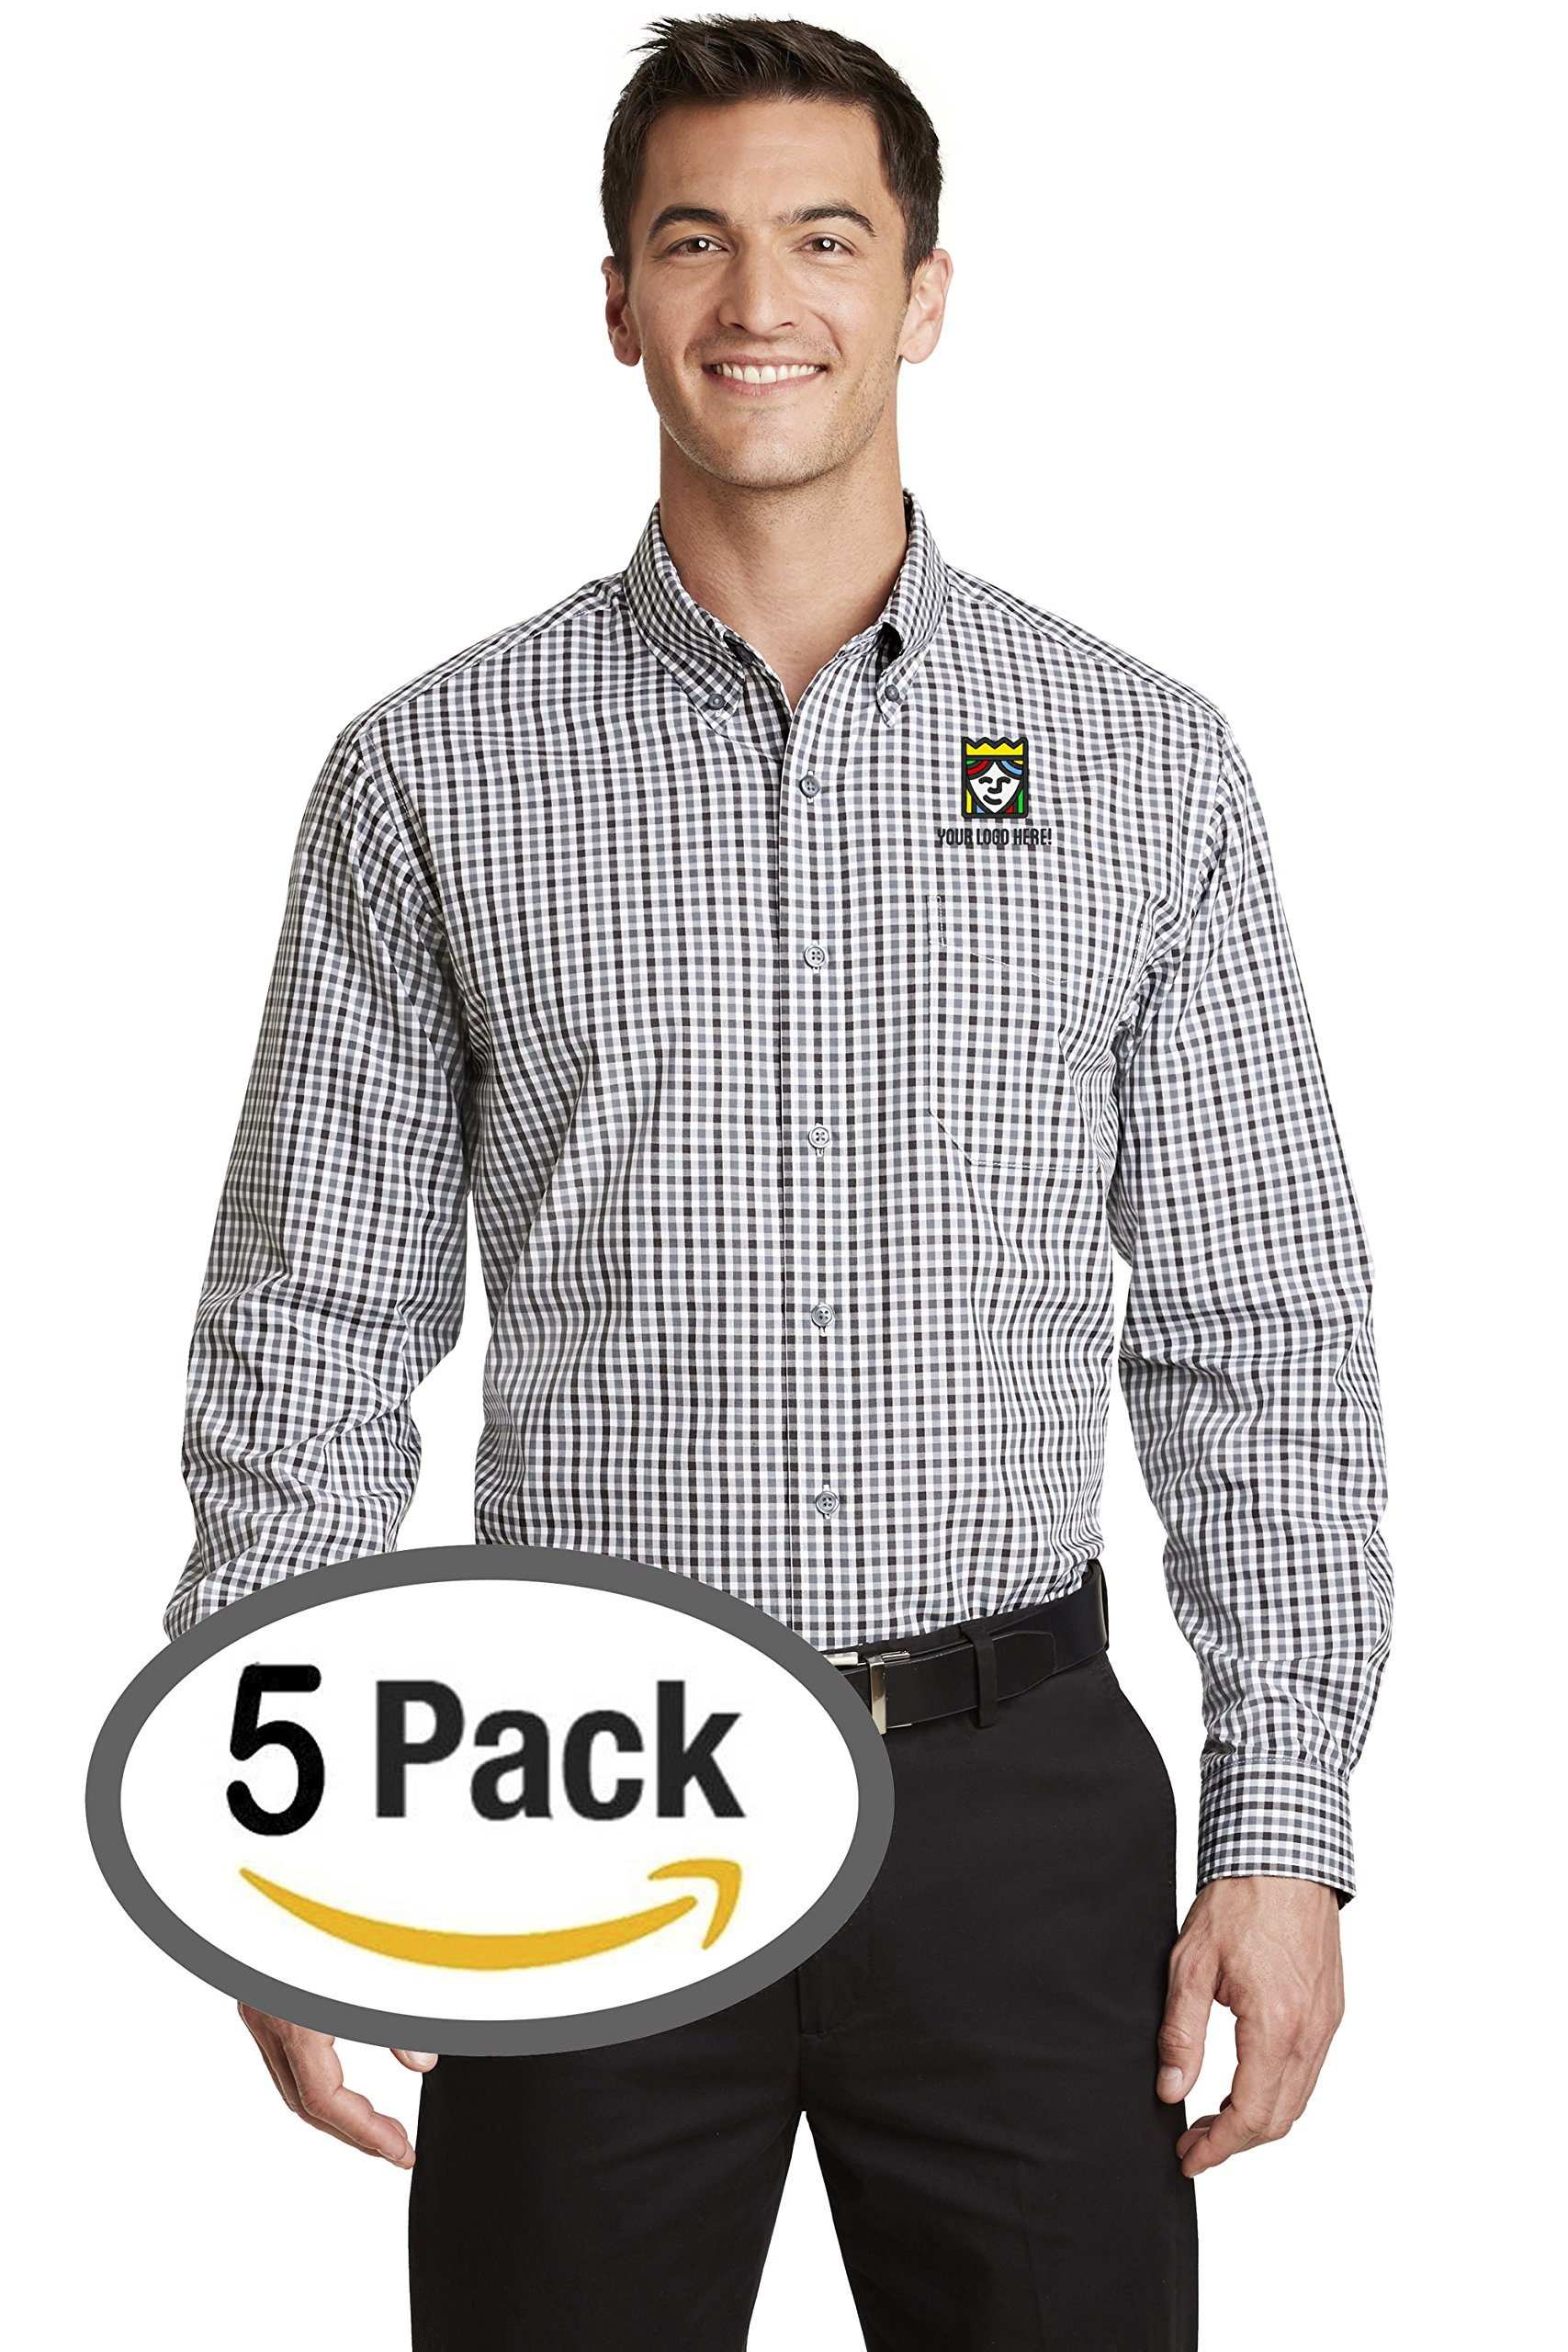 Custom Embroidered Port Authority Long Sleeve Gingham Easy Care Shirt – Pack Of 5 by Queensboro Shirt Company